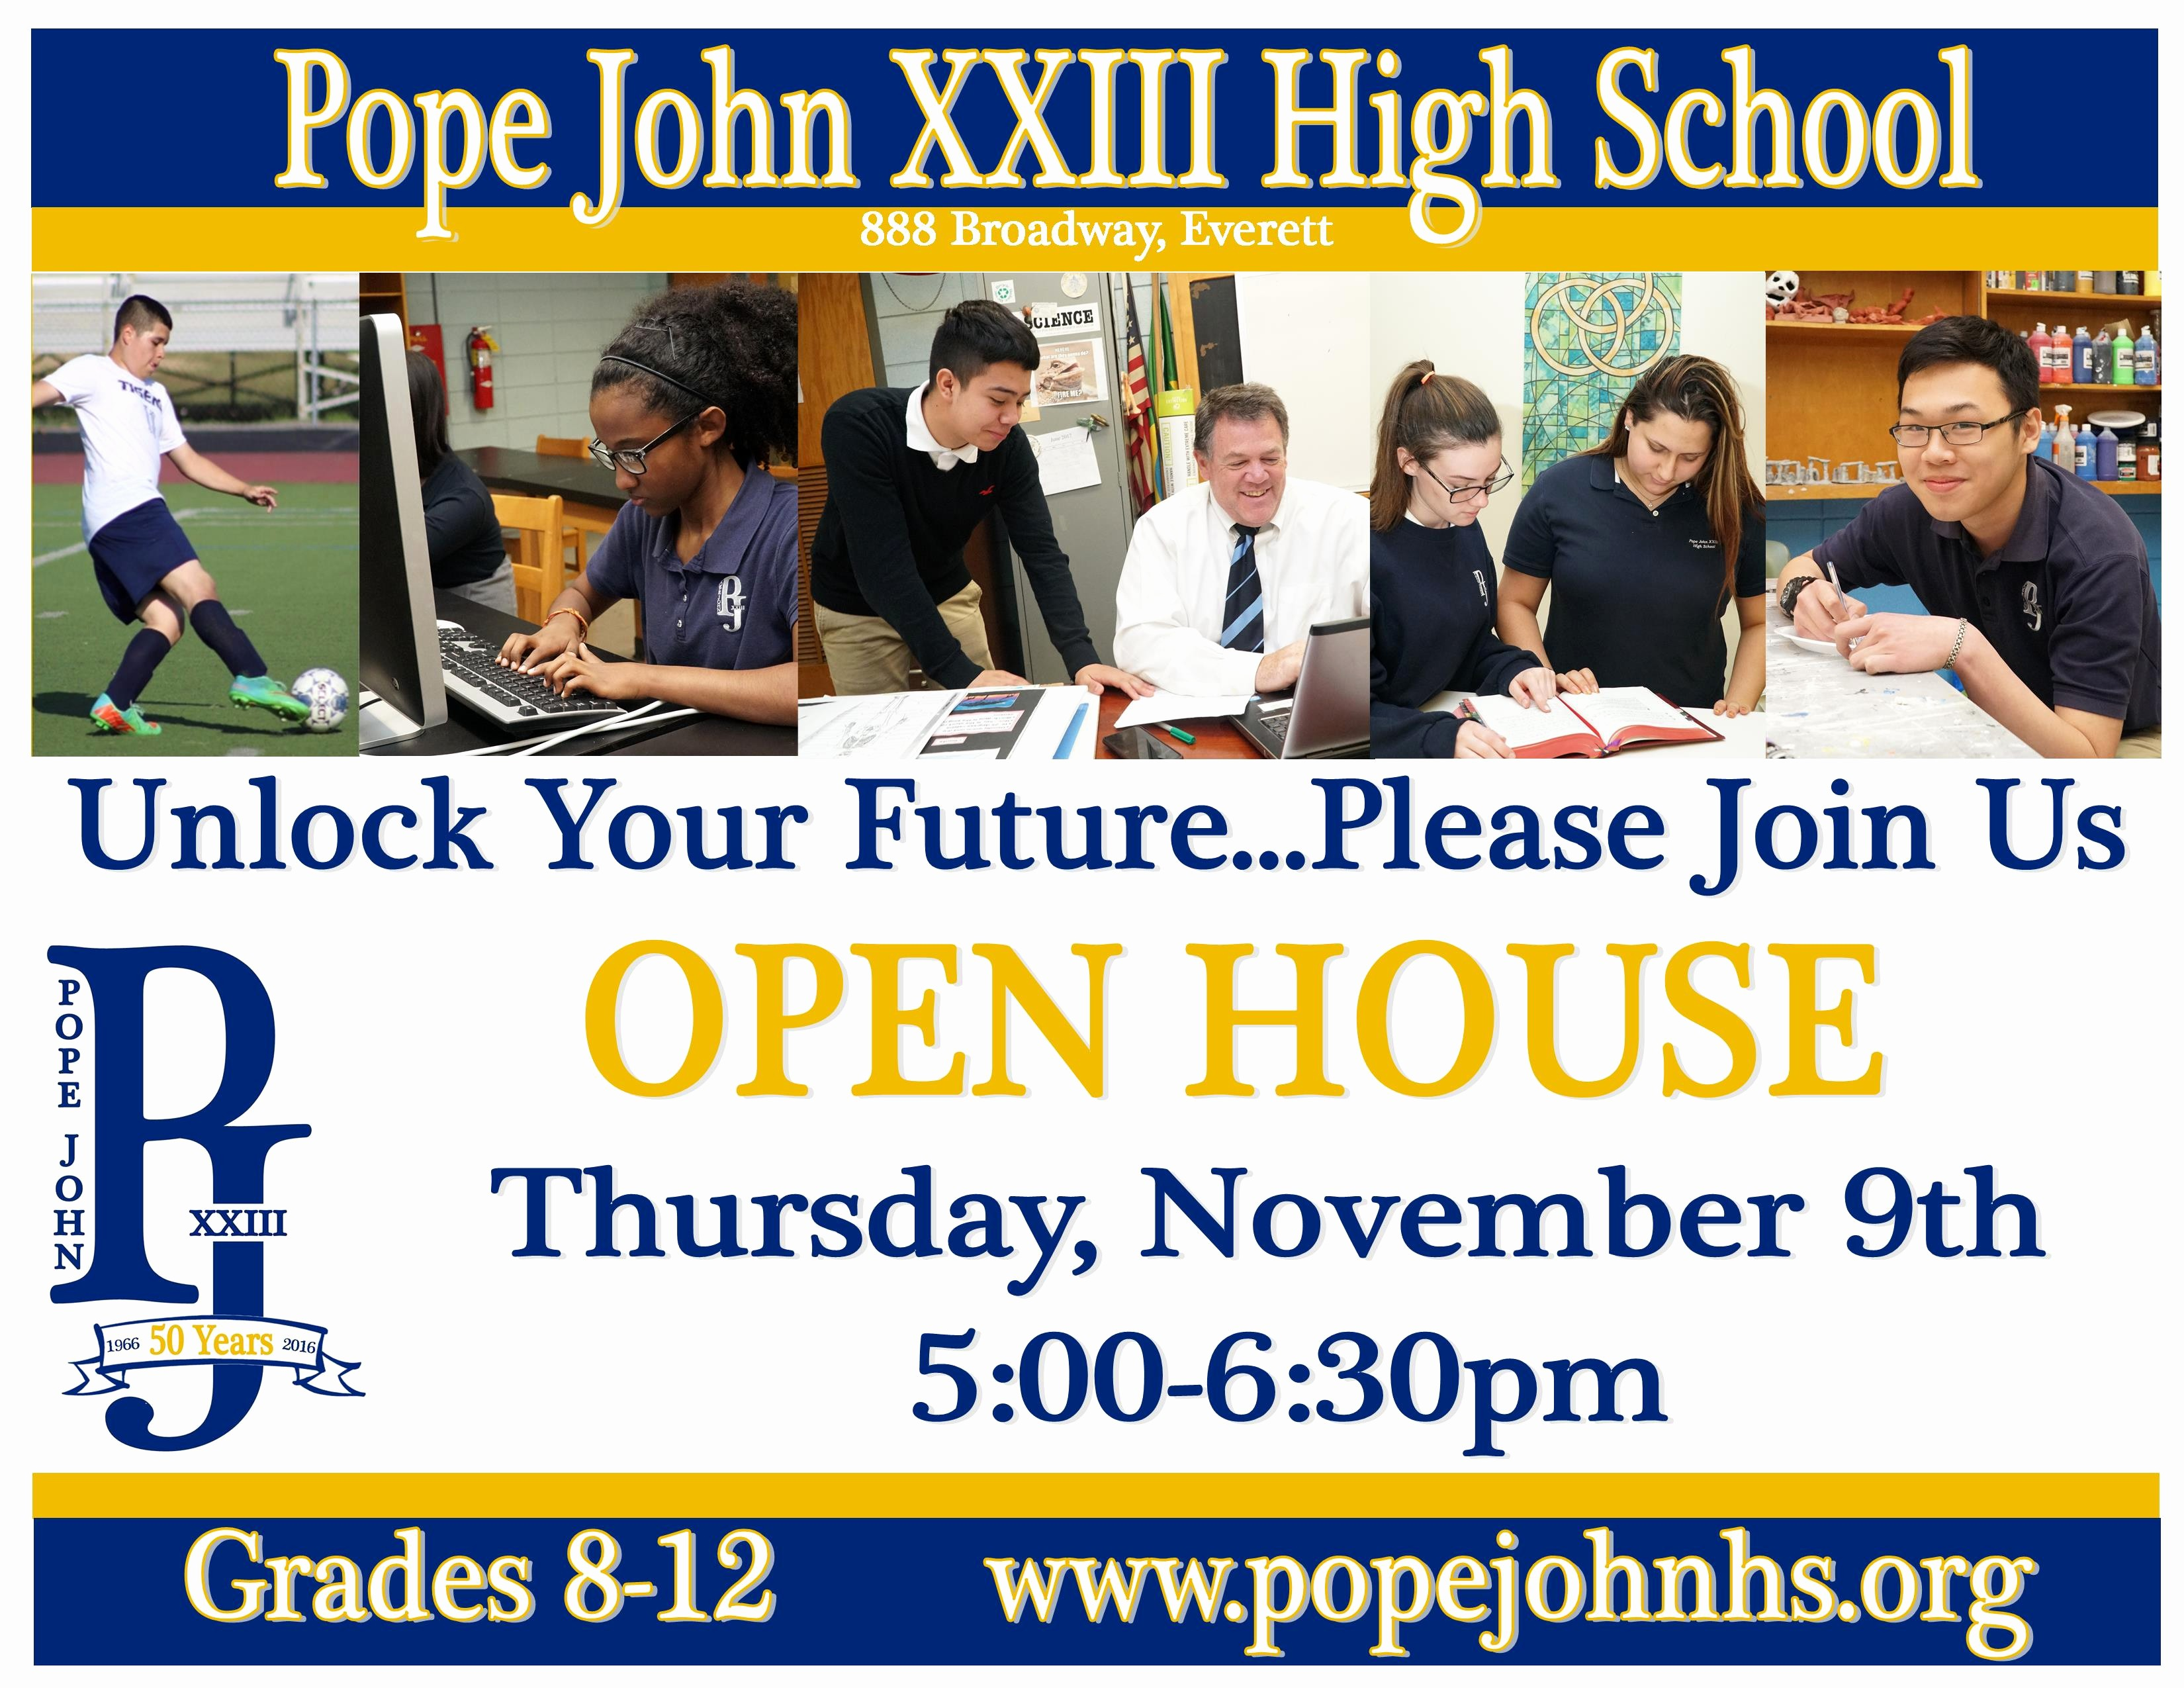 Open House Flyer for School Best Of Pope John Xxiii High School Open House This Thursday